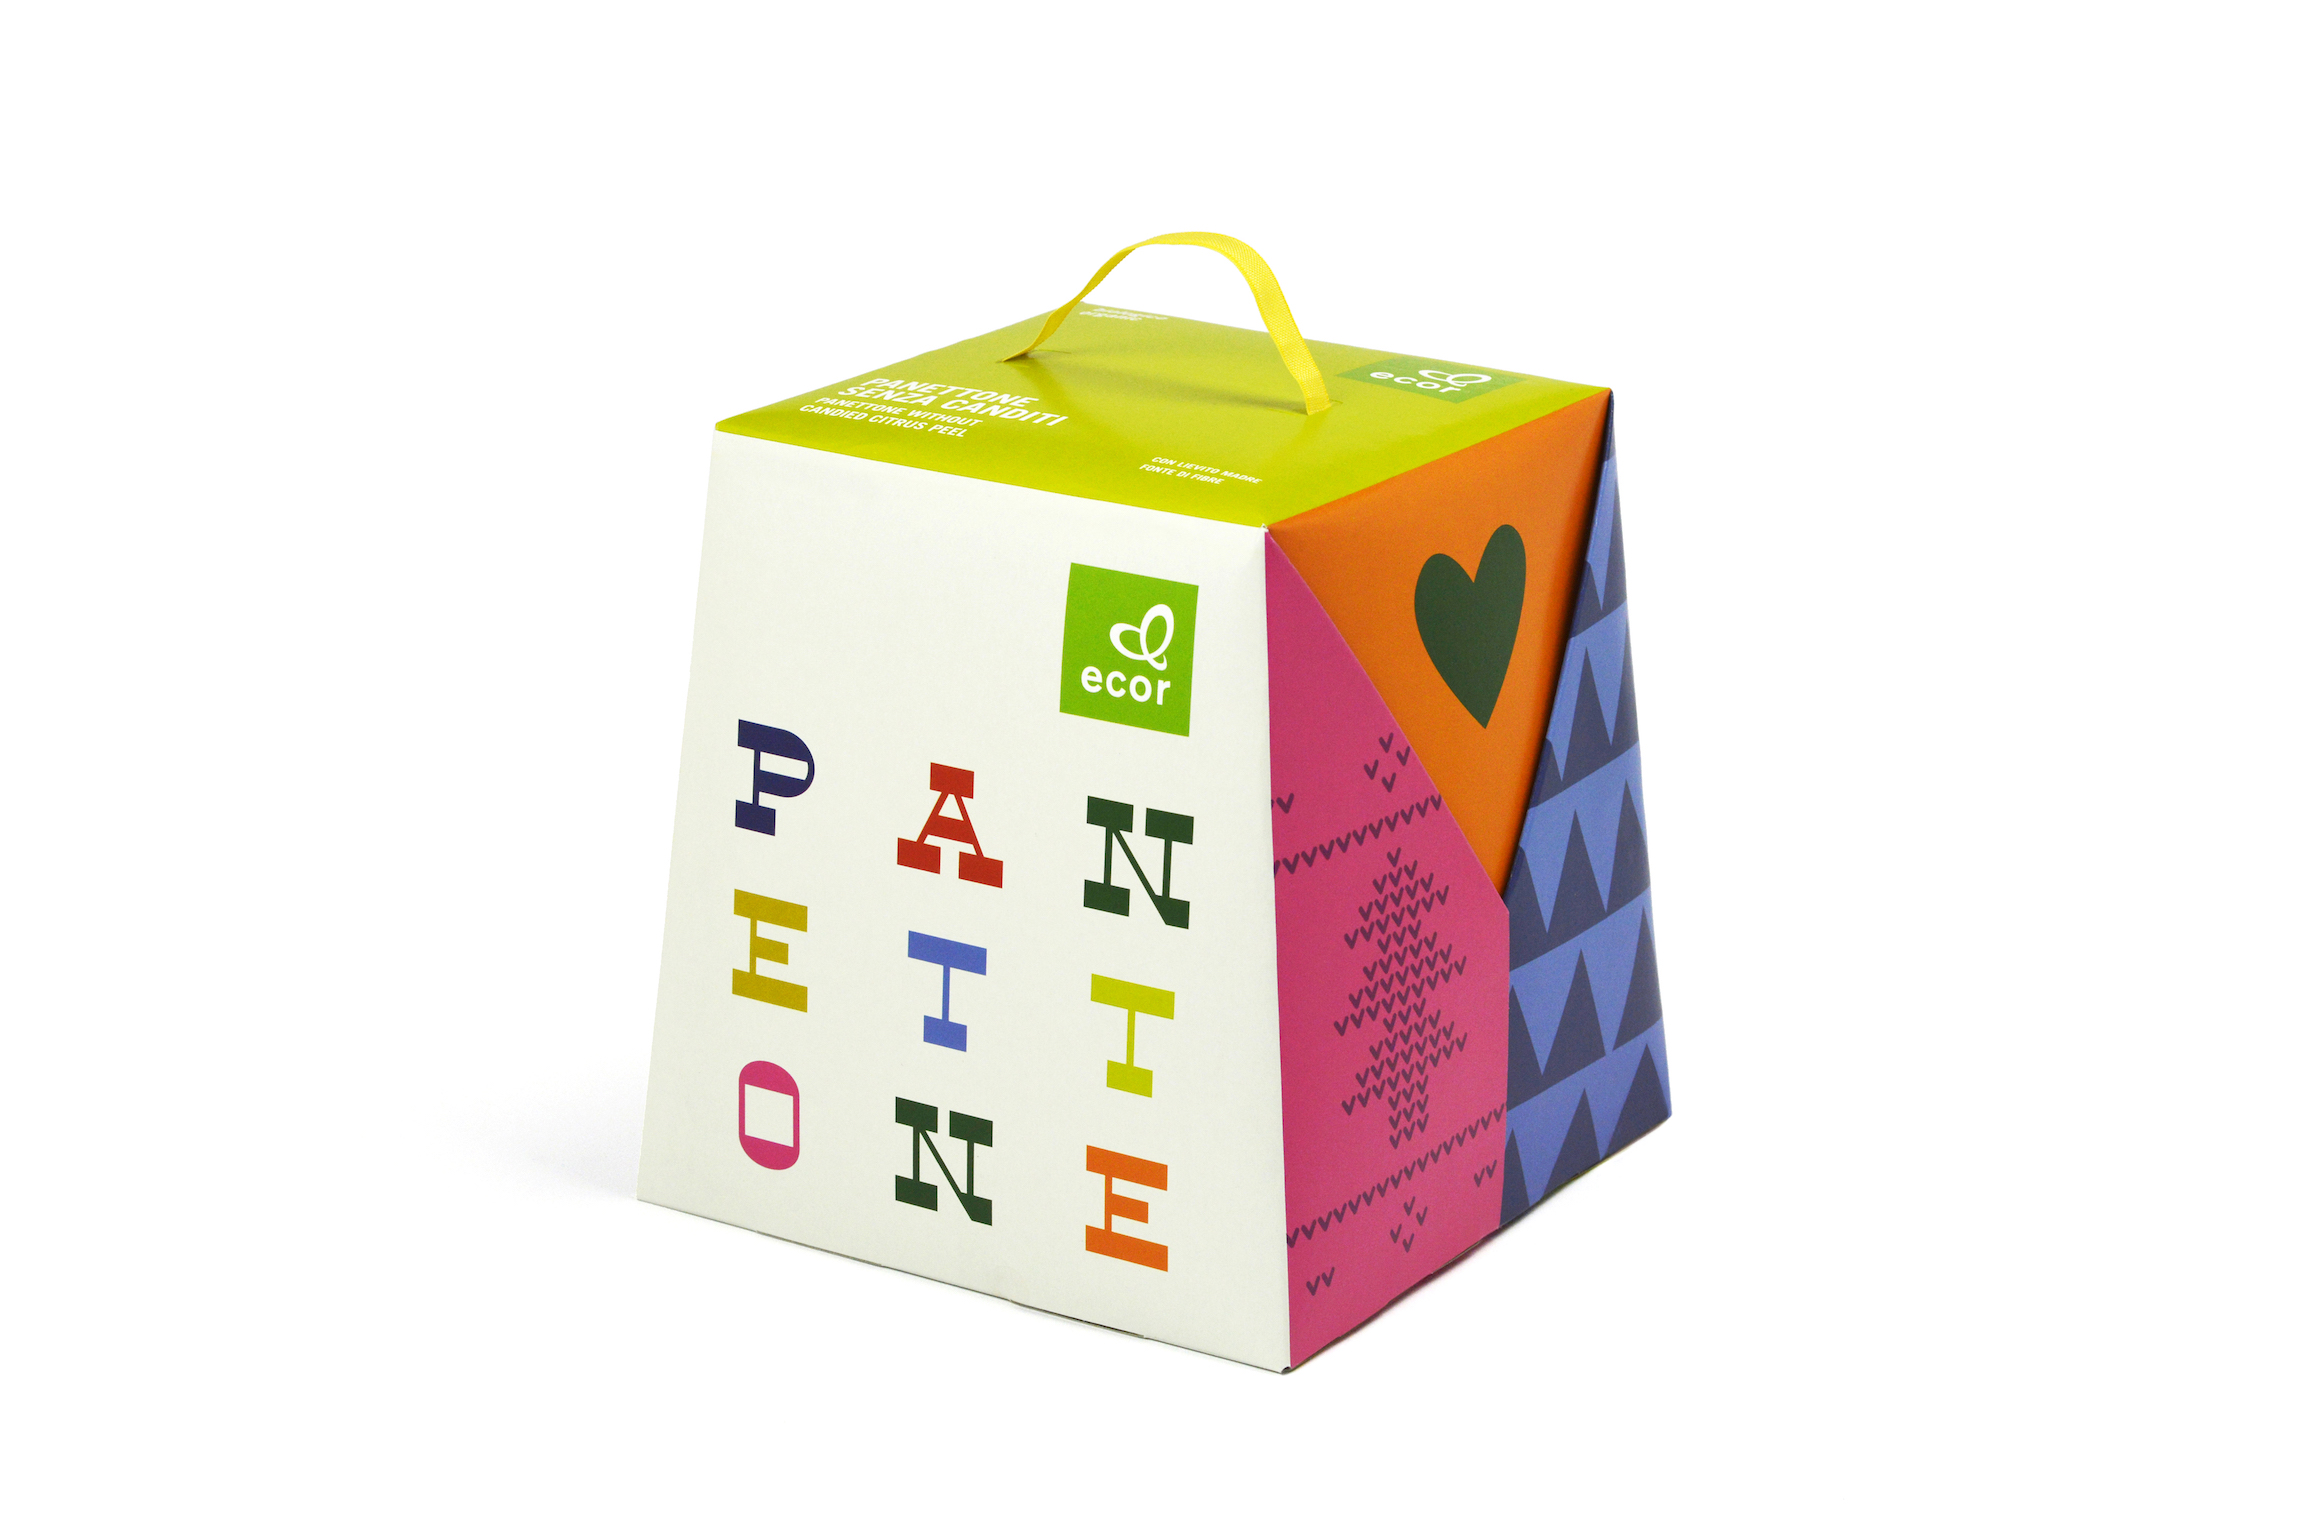 Ecor Panettone and Pandoro Packaging / World Brand Design Society